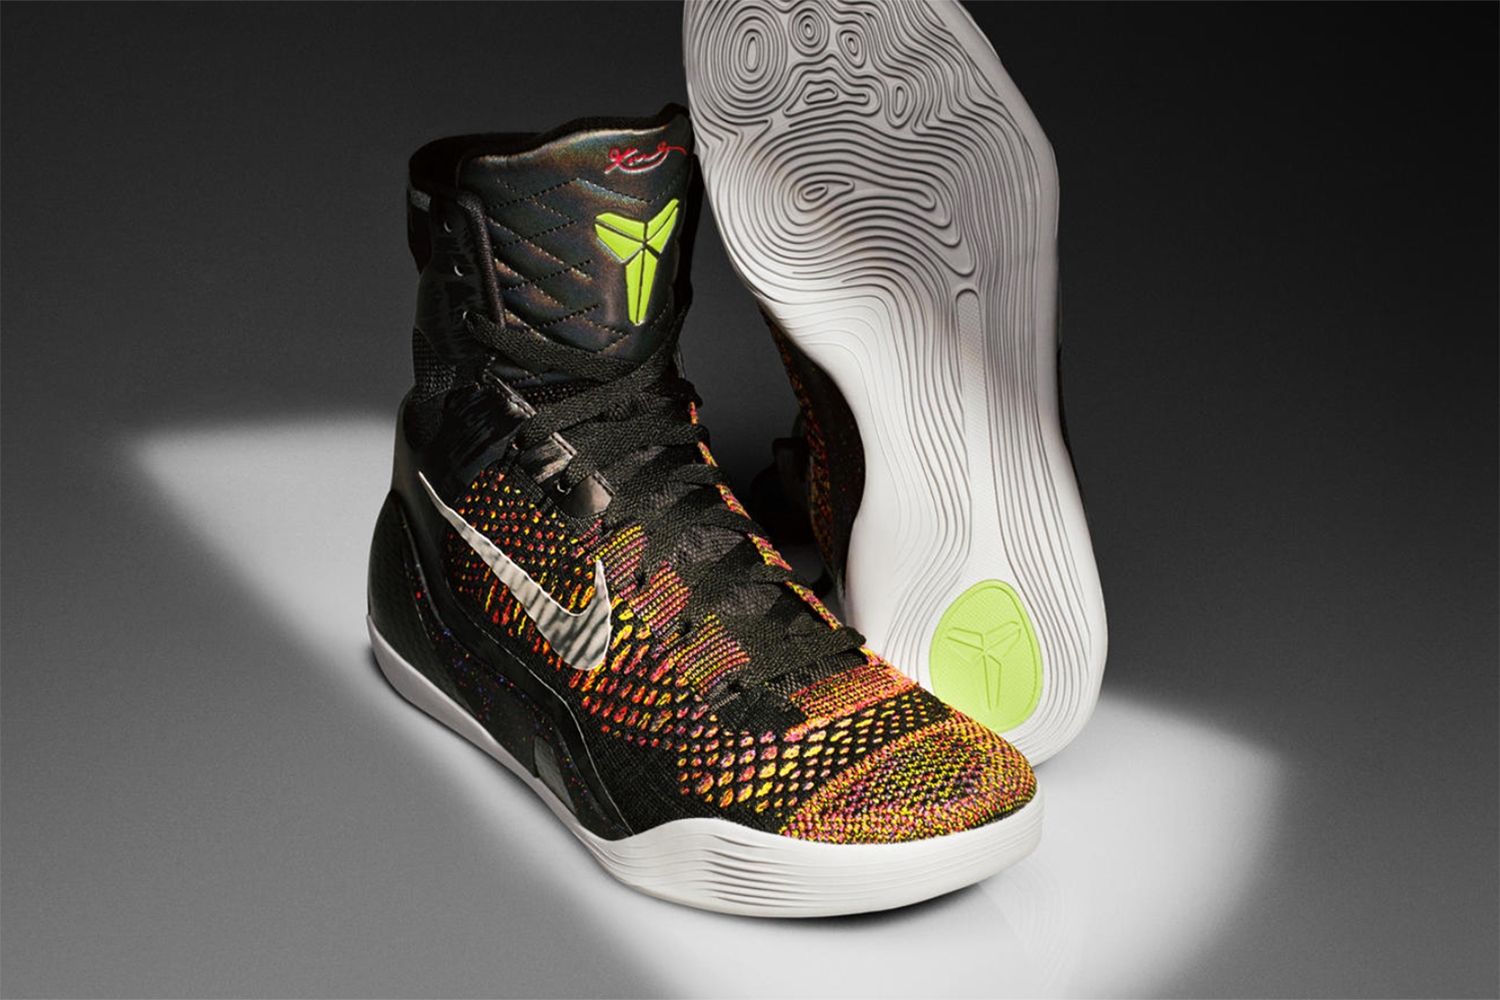 Flyknit. The use of engineered yarn alone puts the Kobe 9 Elite on the top 10 list. Using Flyknit ups the comfort factor while dropping weight, giving a new wear feeling to basketball shoes. Of course, Kobe going to a super-high top shoe offers plenty of Flyknit square footage to design on for dramatic coloring and design. And whether that comes as a plus or minus is in the eye of the beholder.